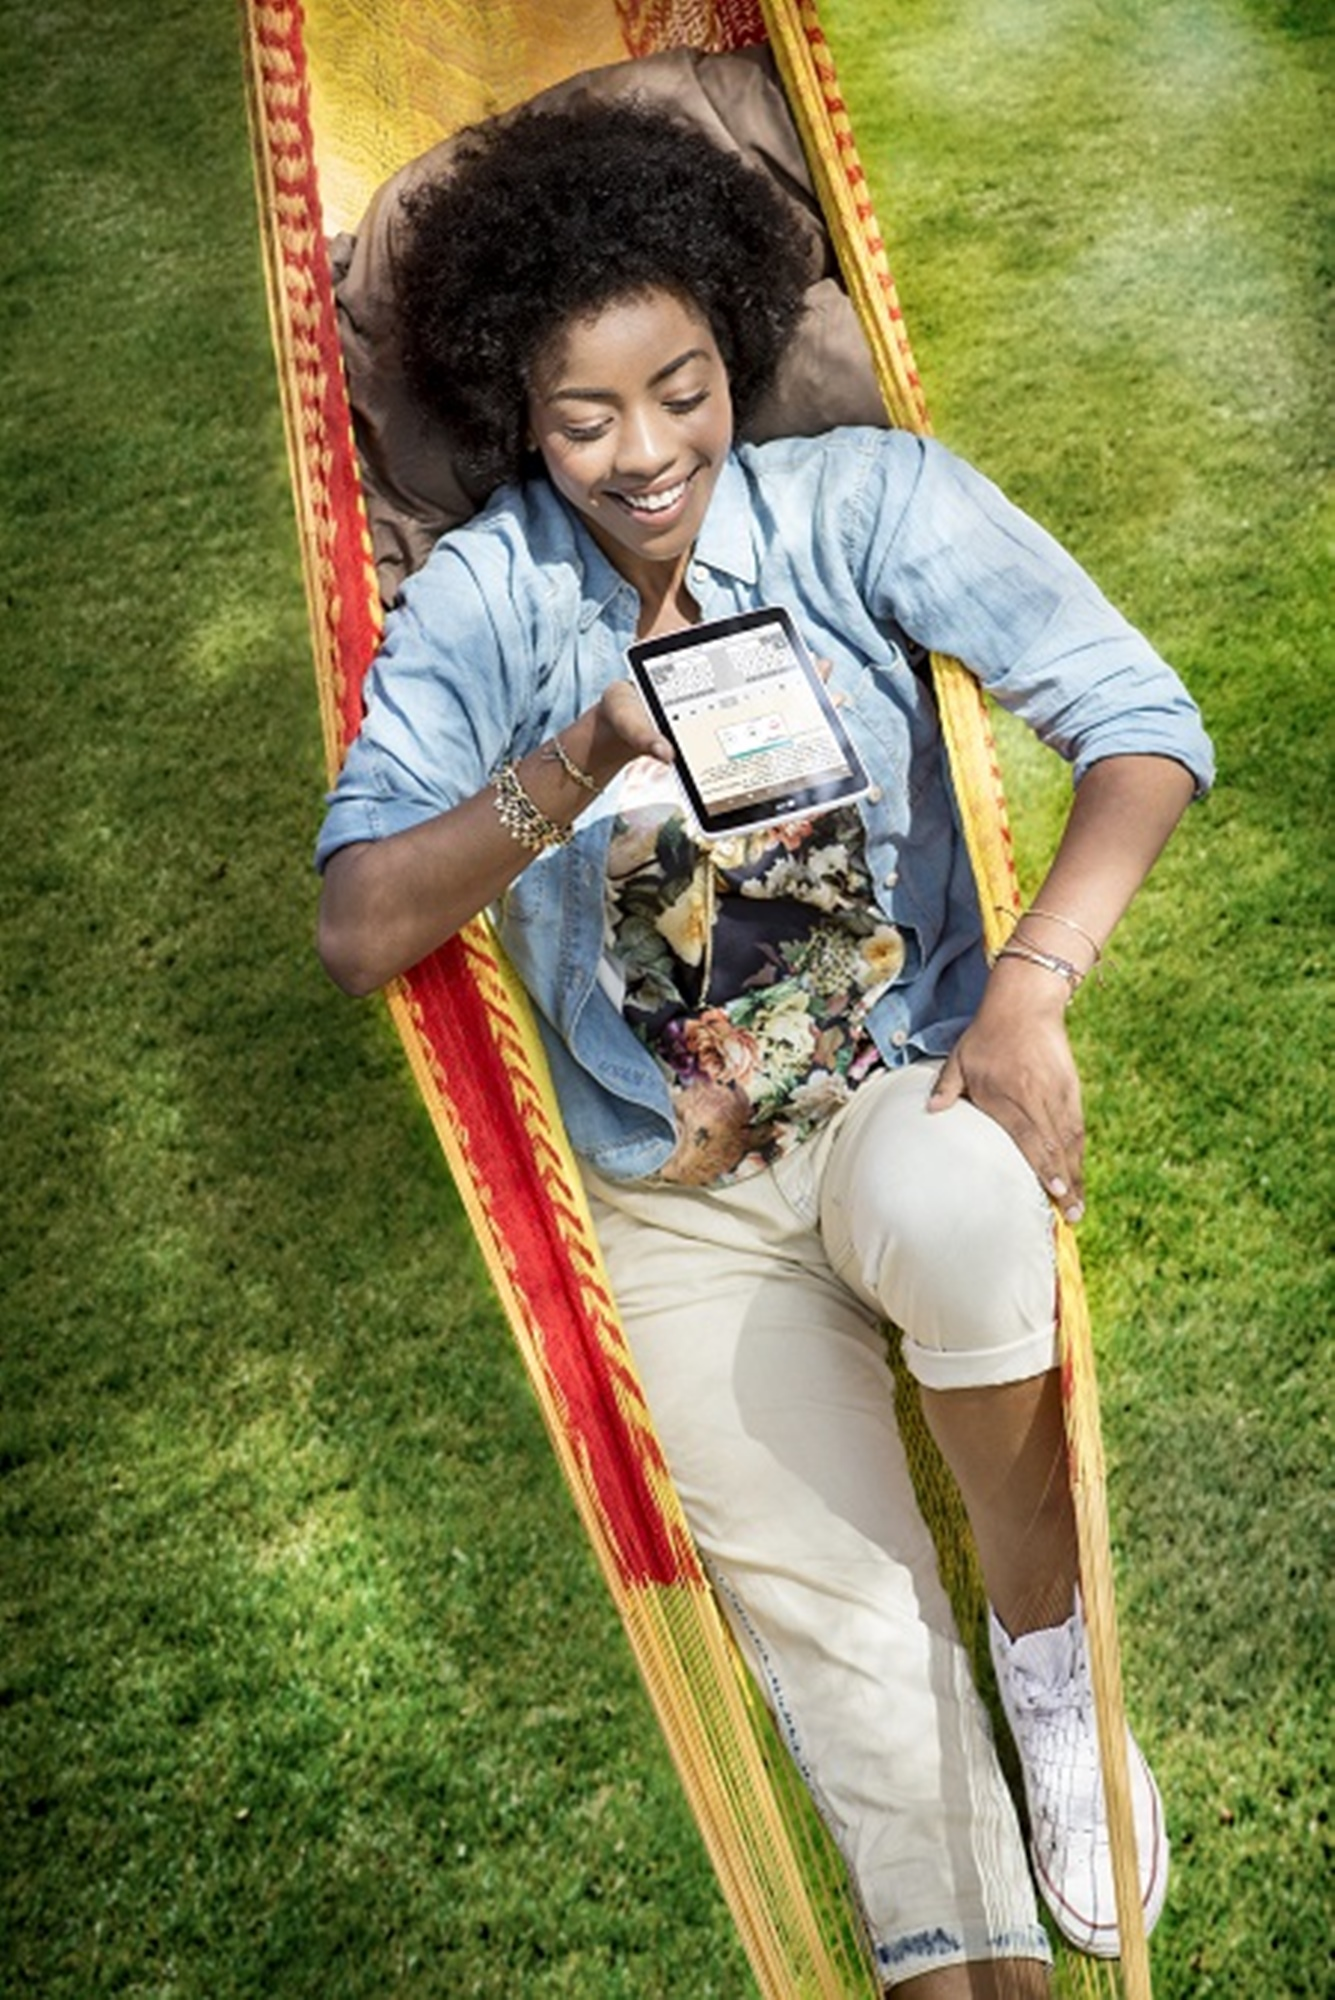 A girl is lying on a hammock holding a LG G Pad 8.0 LTE with her right hand.